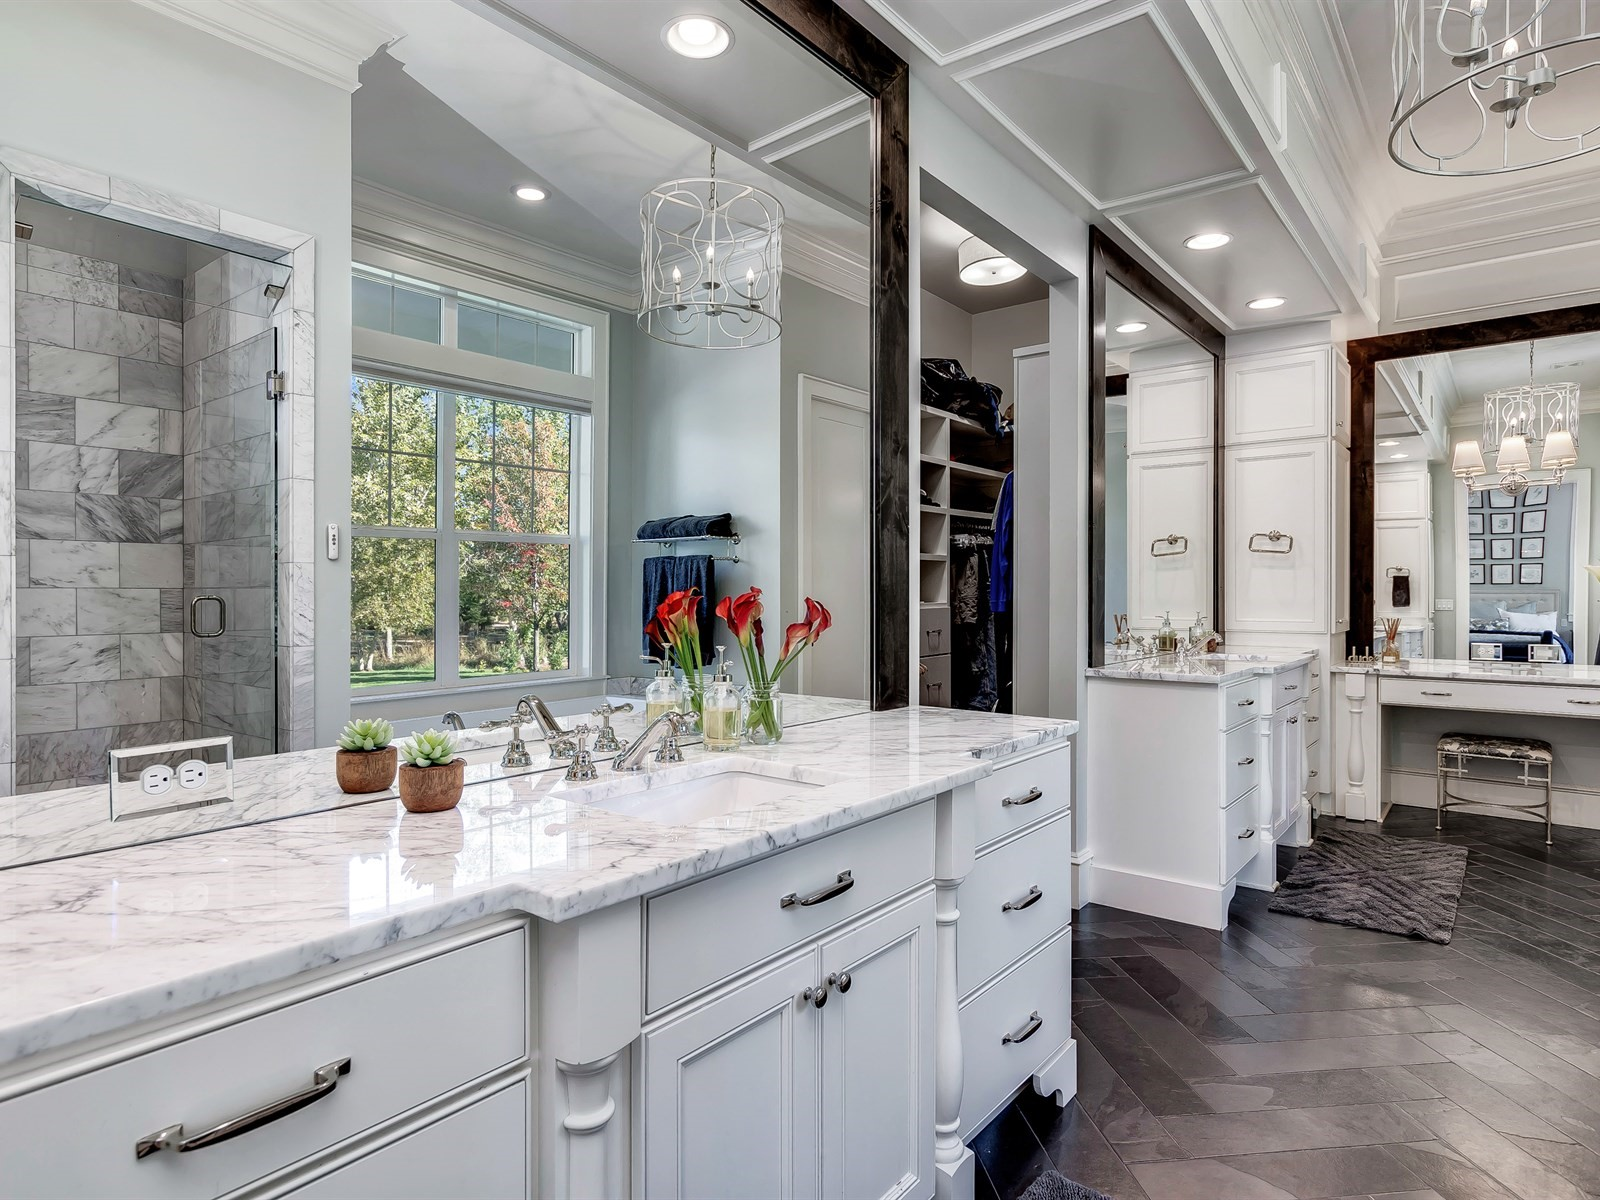 042_Master Bathroom .jpg